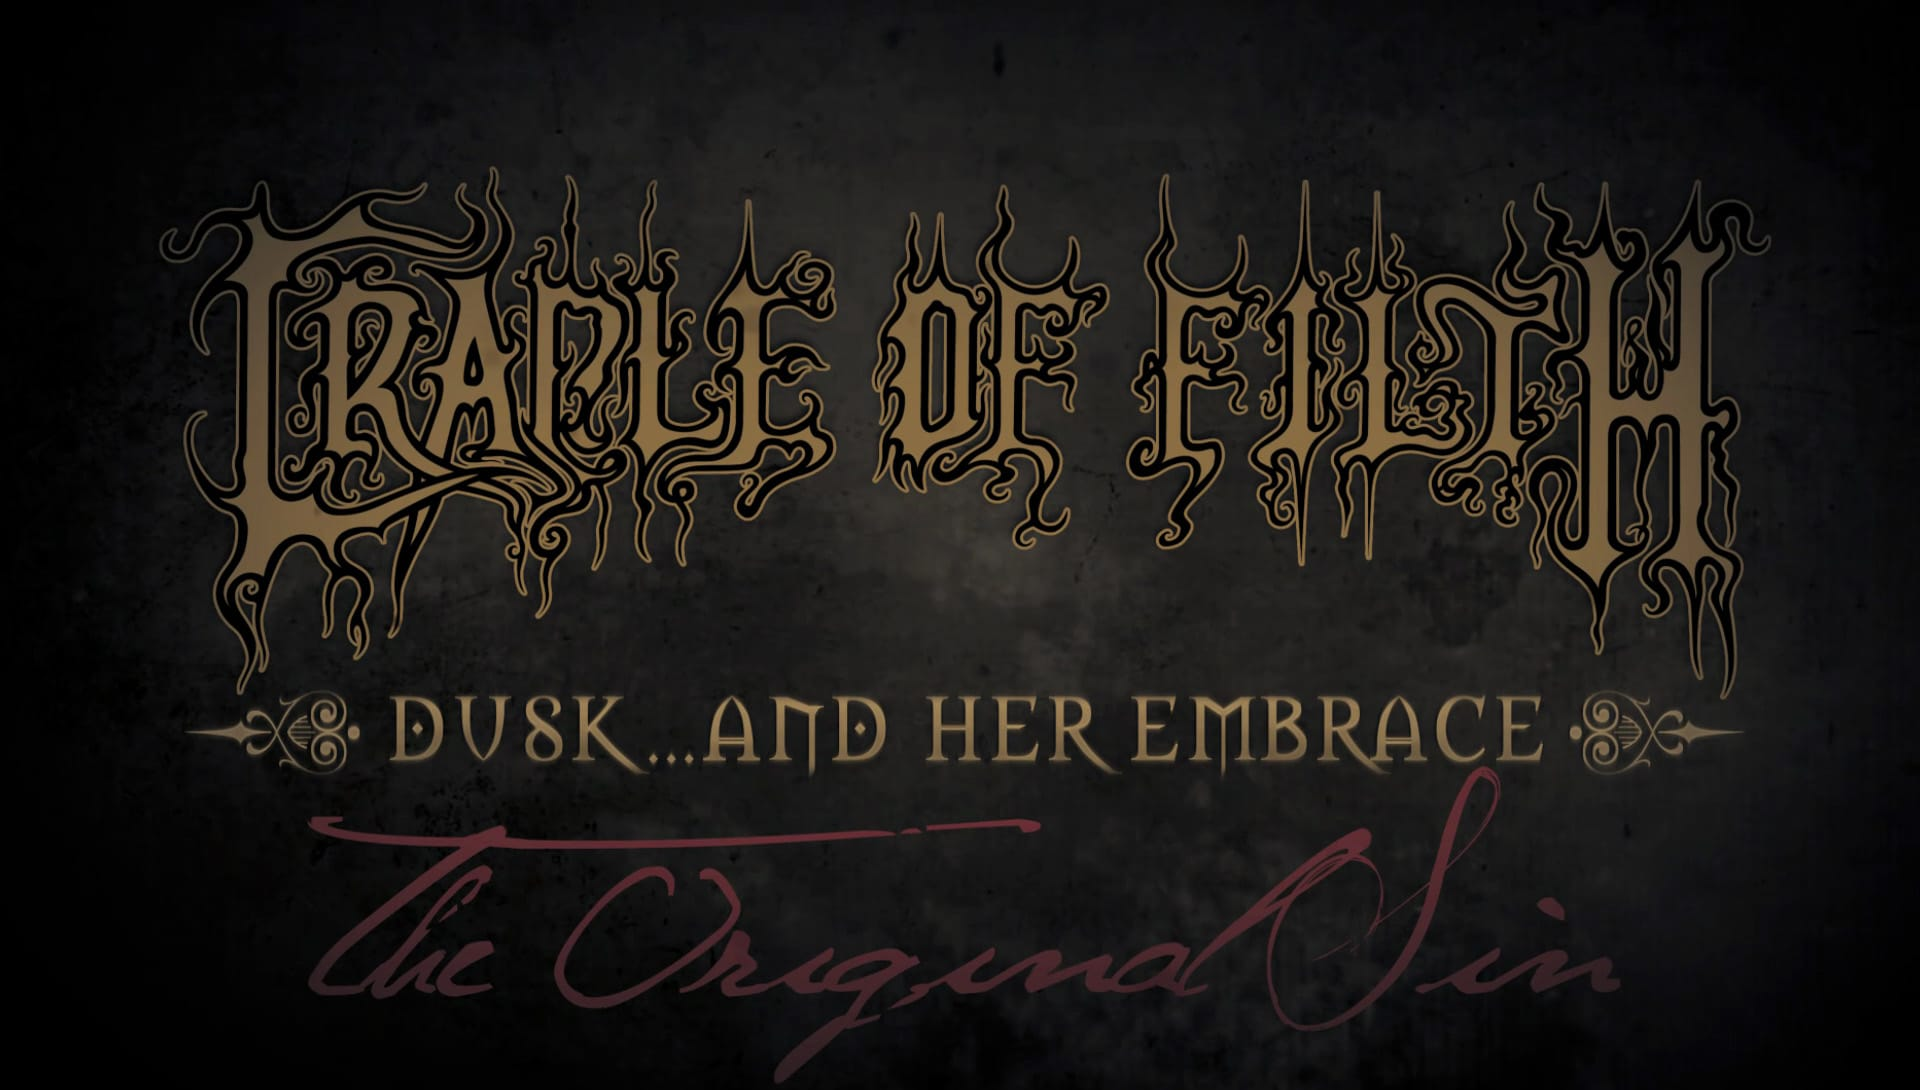 Cradle of Filth – Dusk and Her Embrace